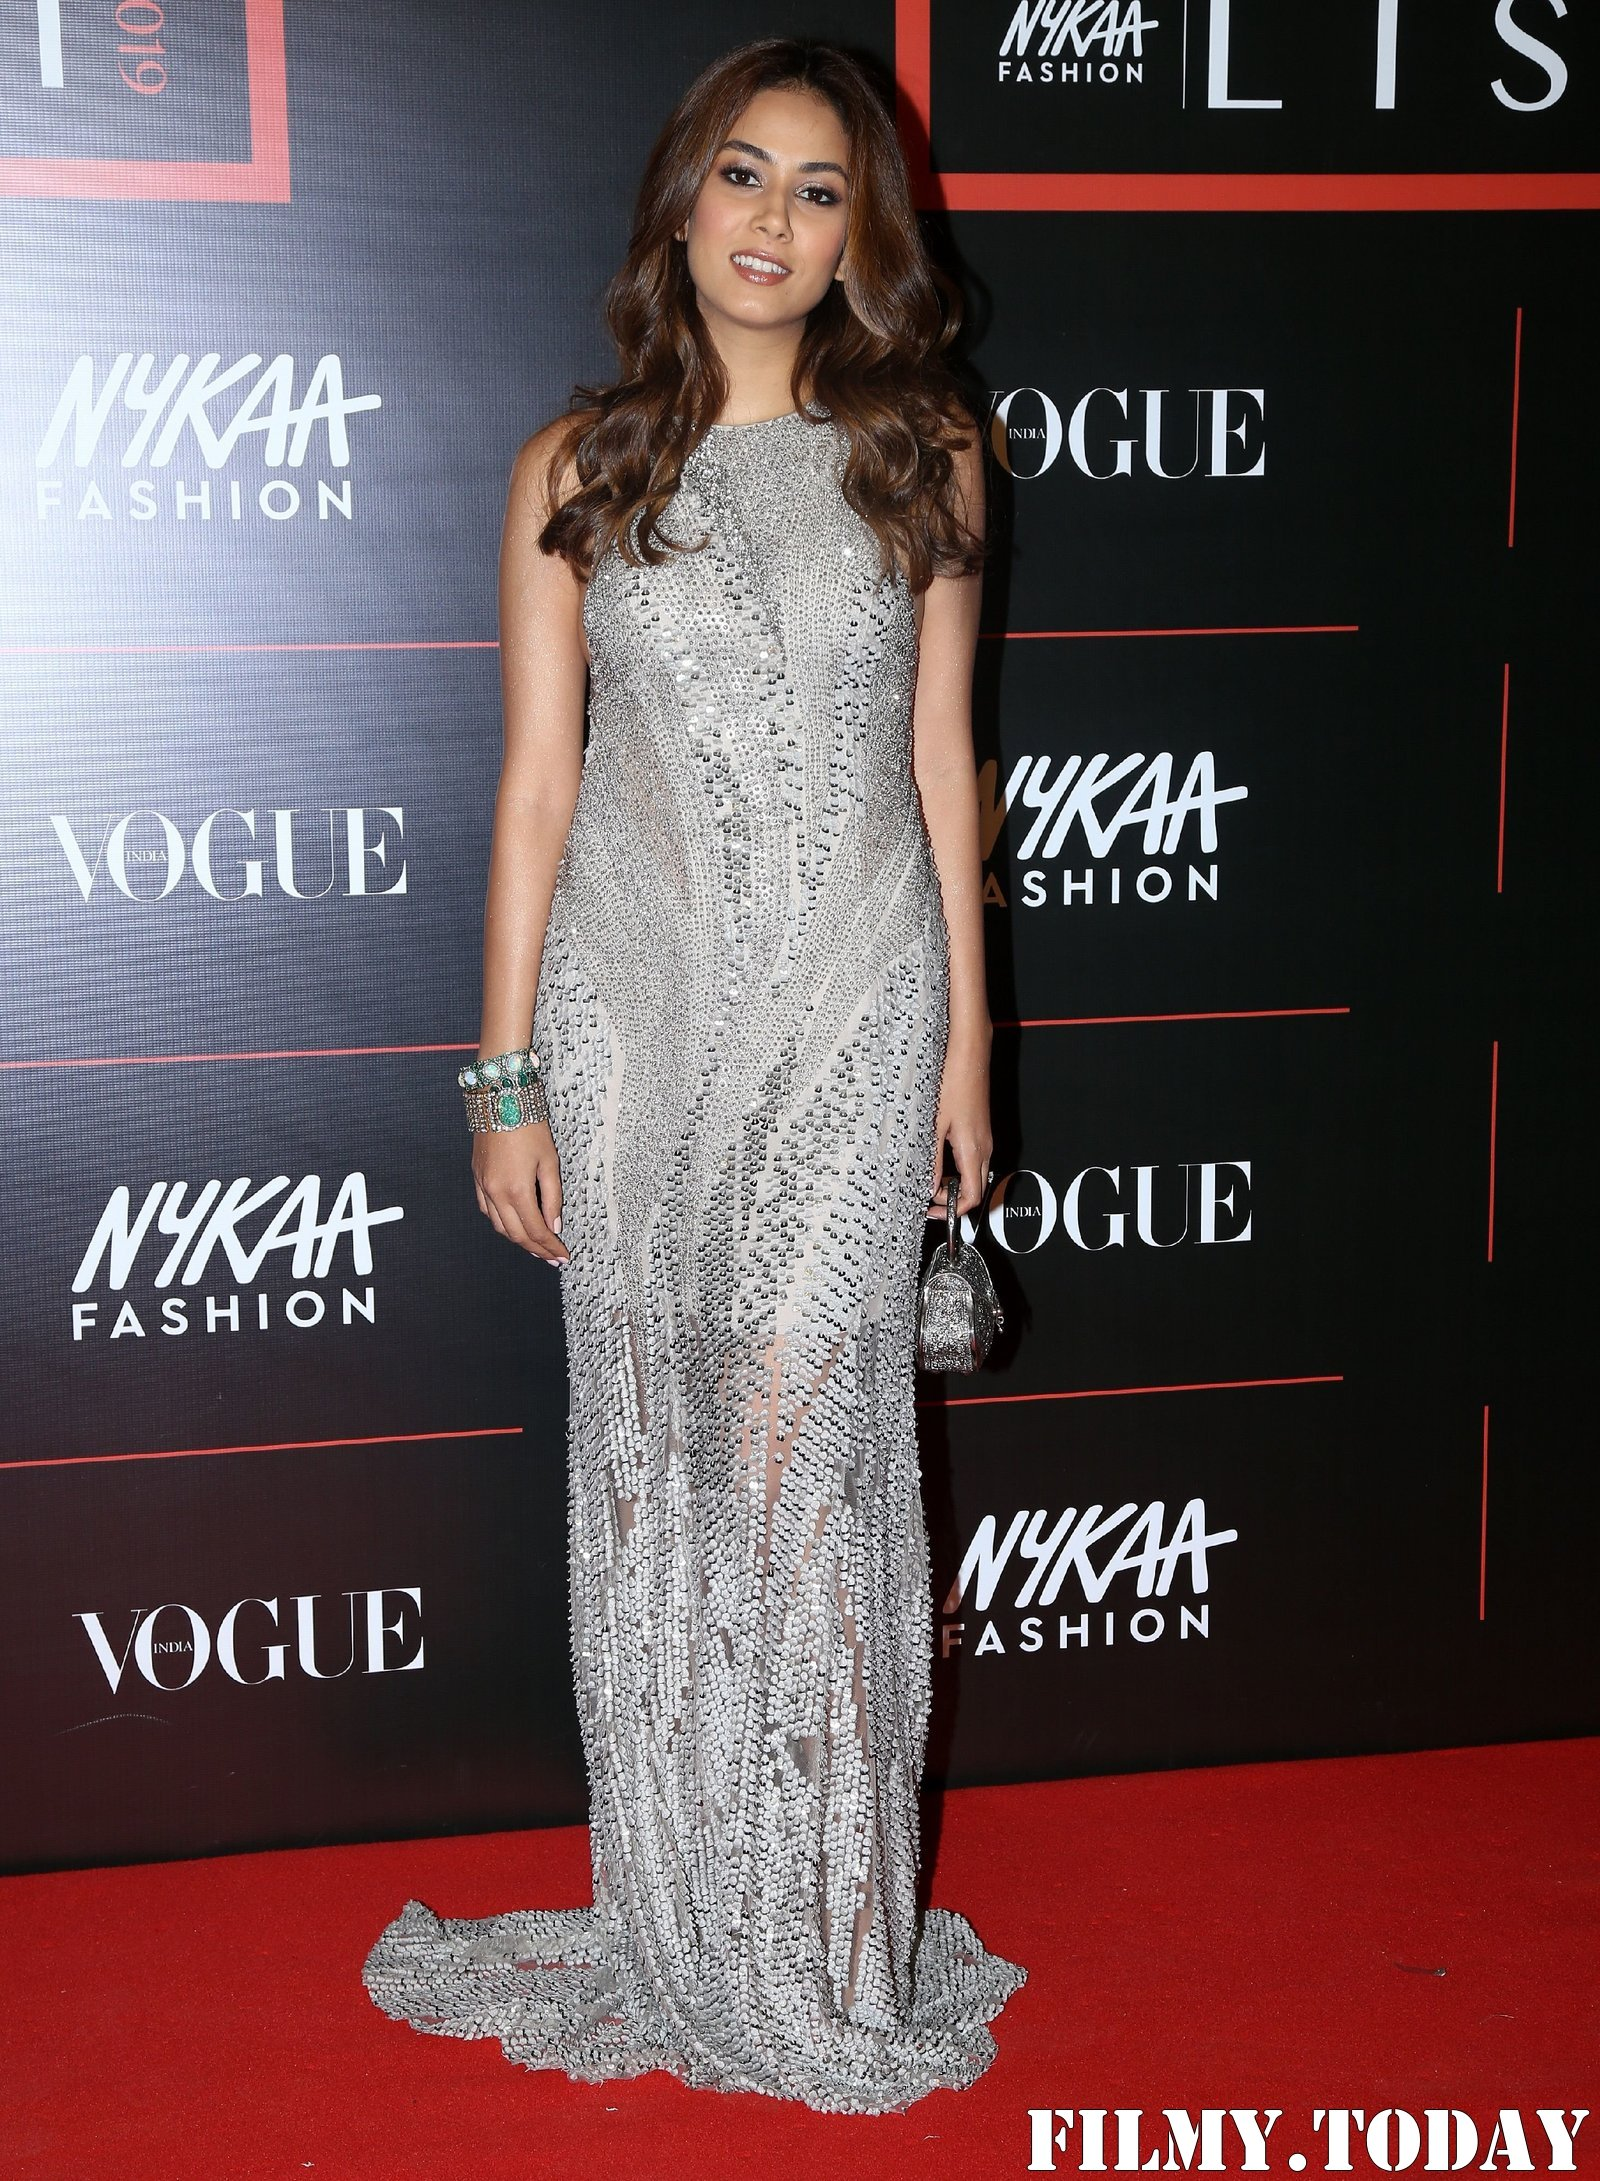 Mira Rajput - Photos: Celebs At Vogue The Power List 2019 At St Regis Hotel | Picture 1706342